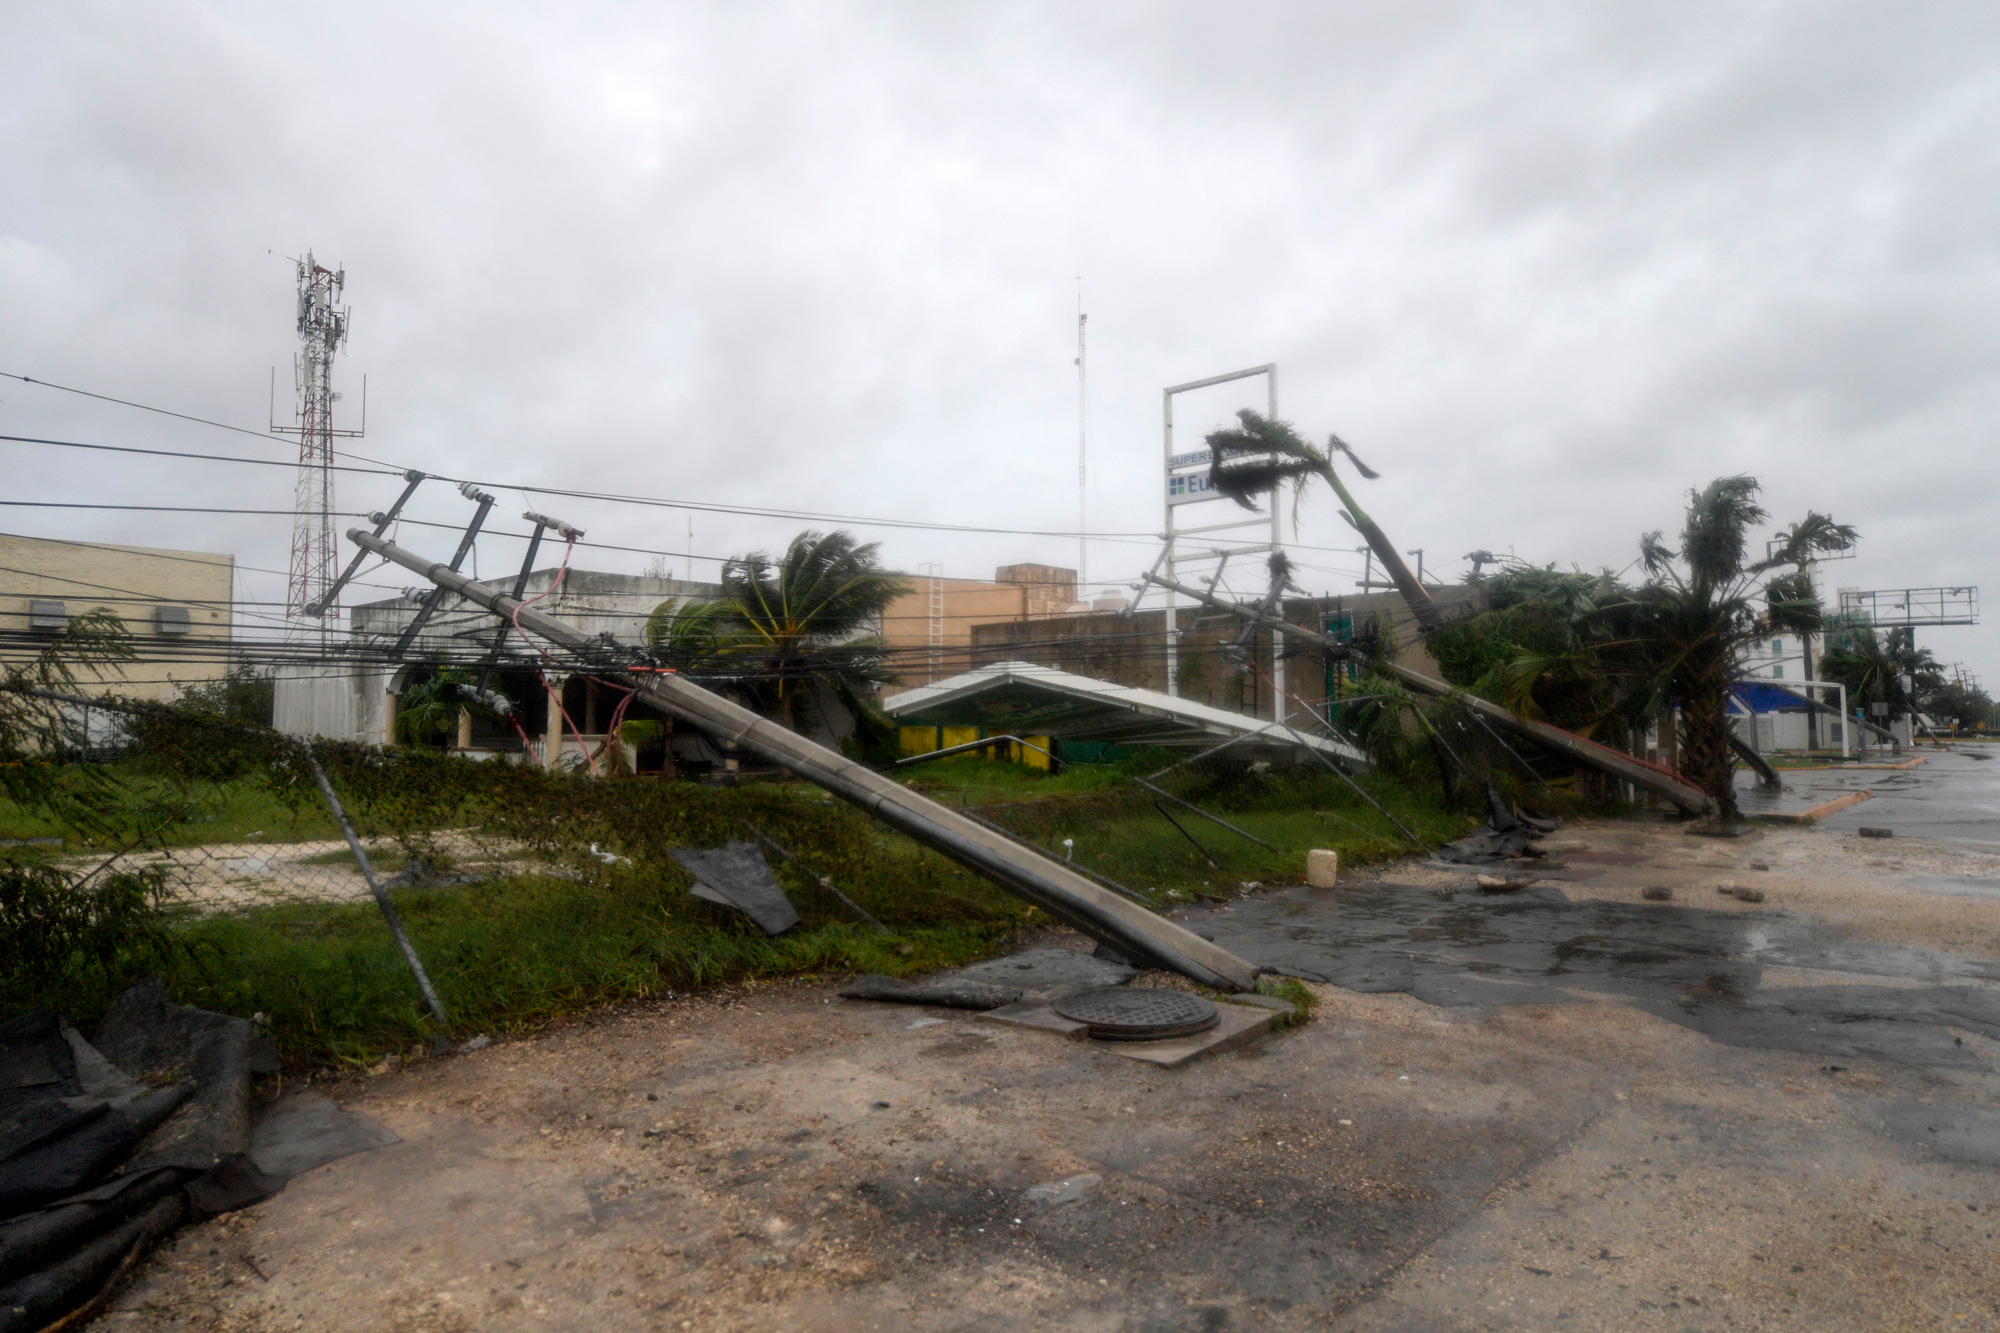 Fallen power lines and trees are seen after the passage of Hurricane Delta in Cancun, Quintana Roo, Mexico, on October 7.